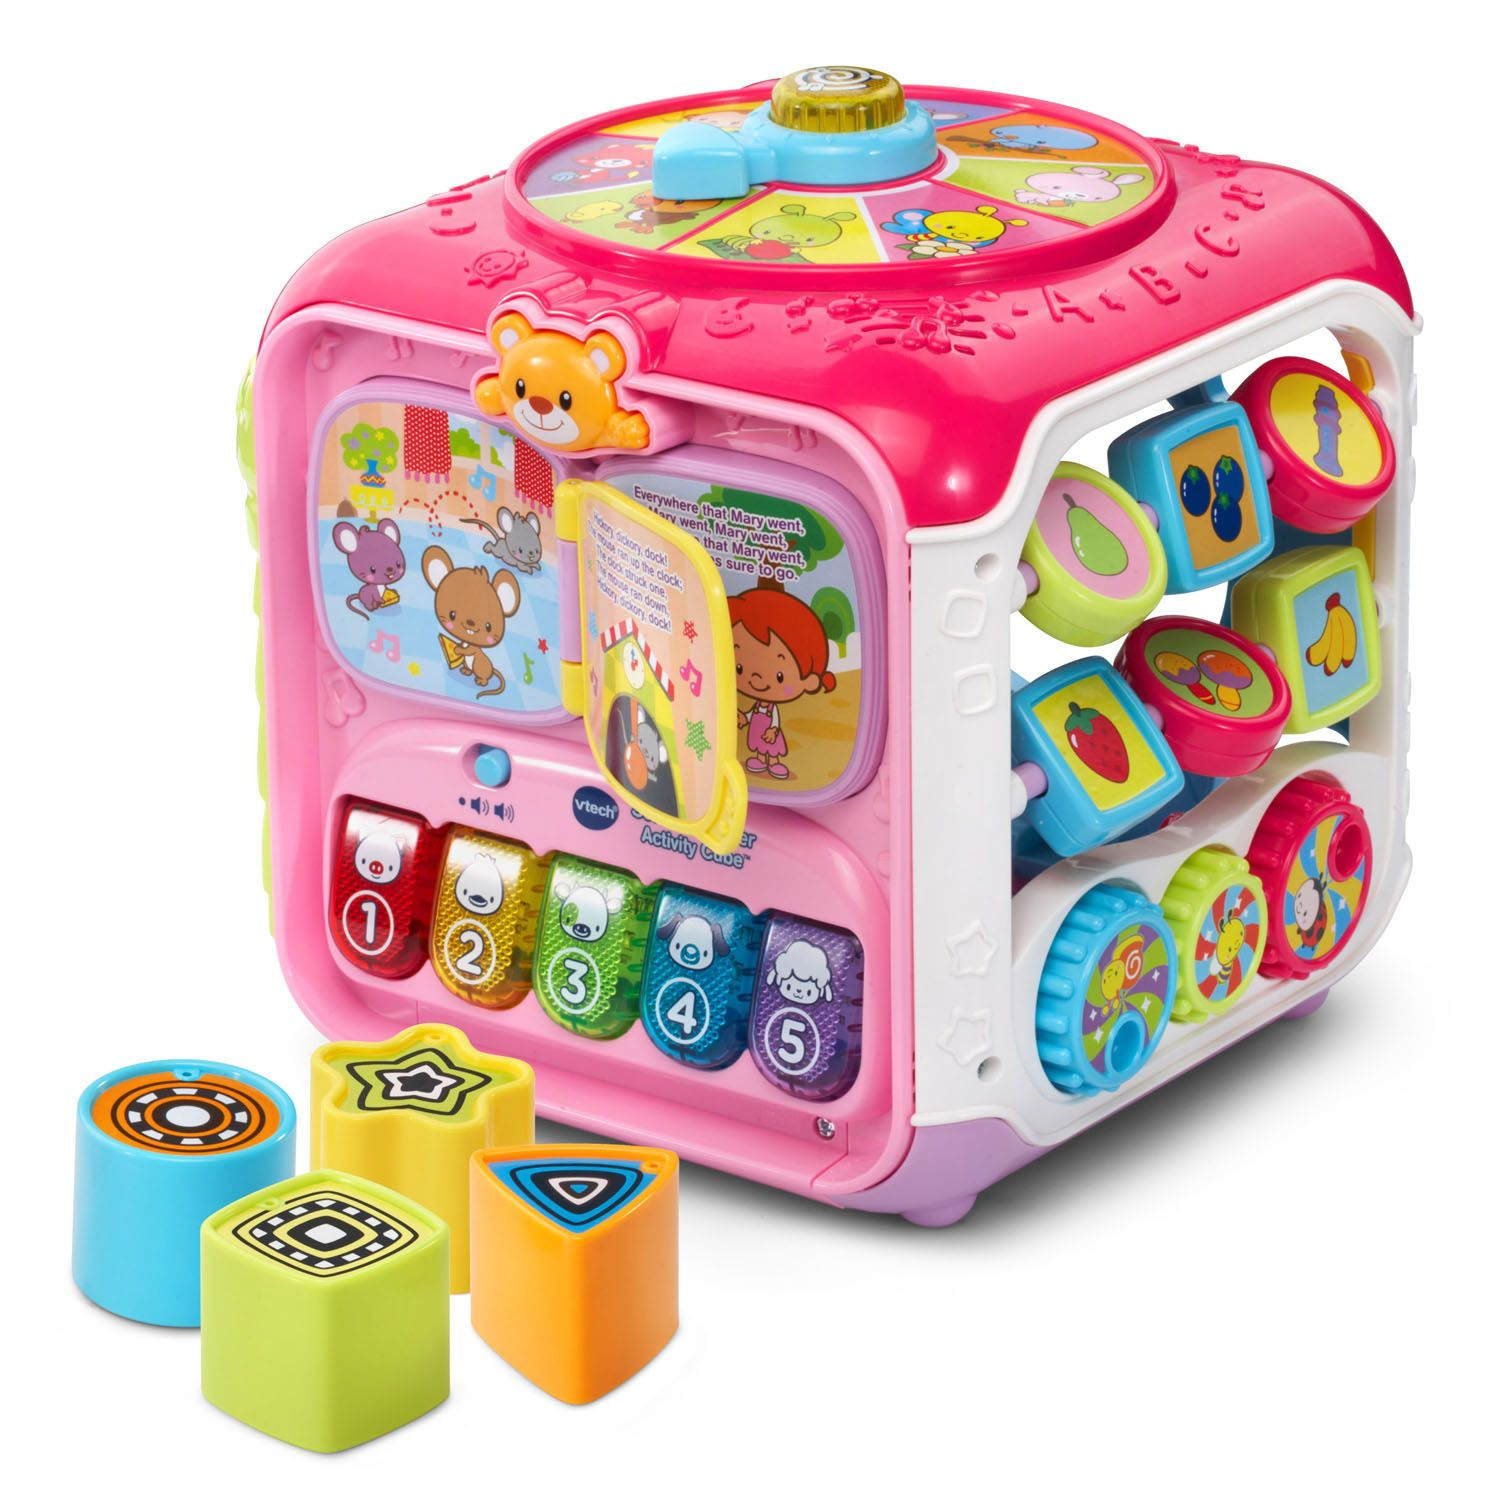 VTech Sort and Discover Activity Cube Pink Free Shipping